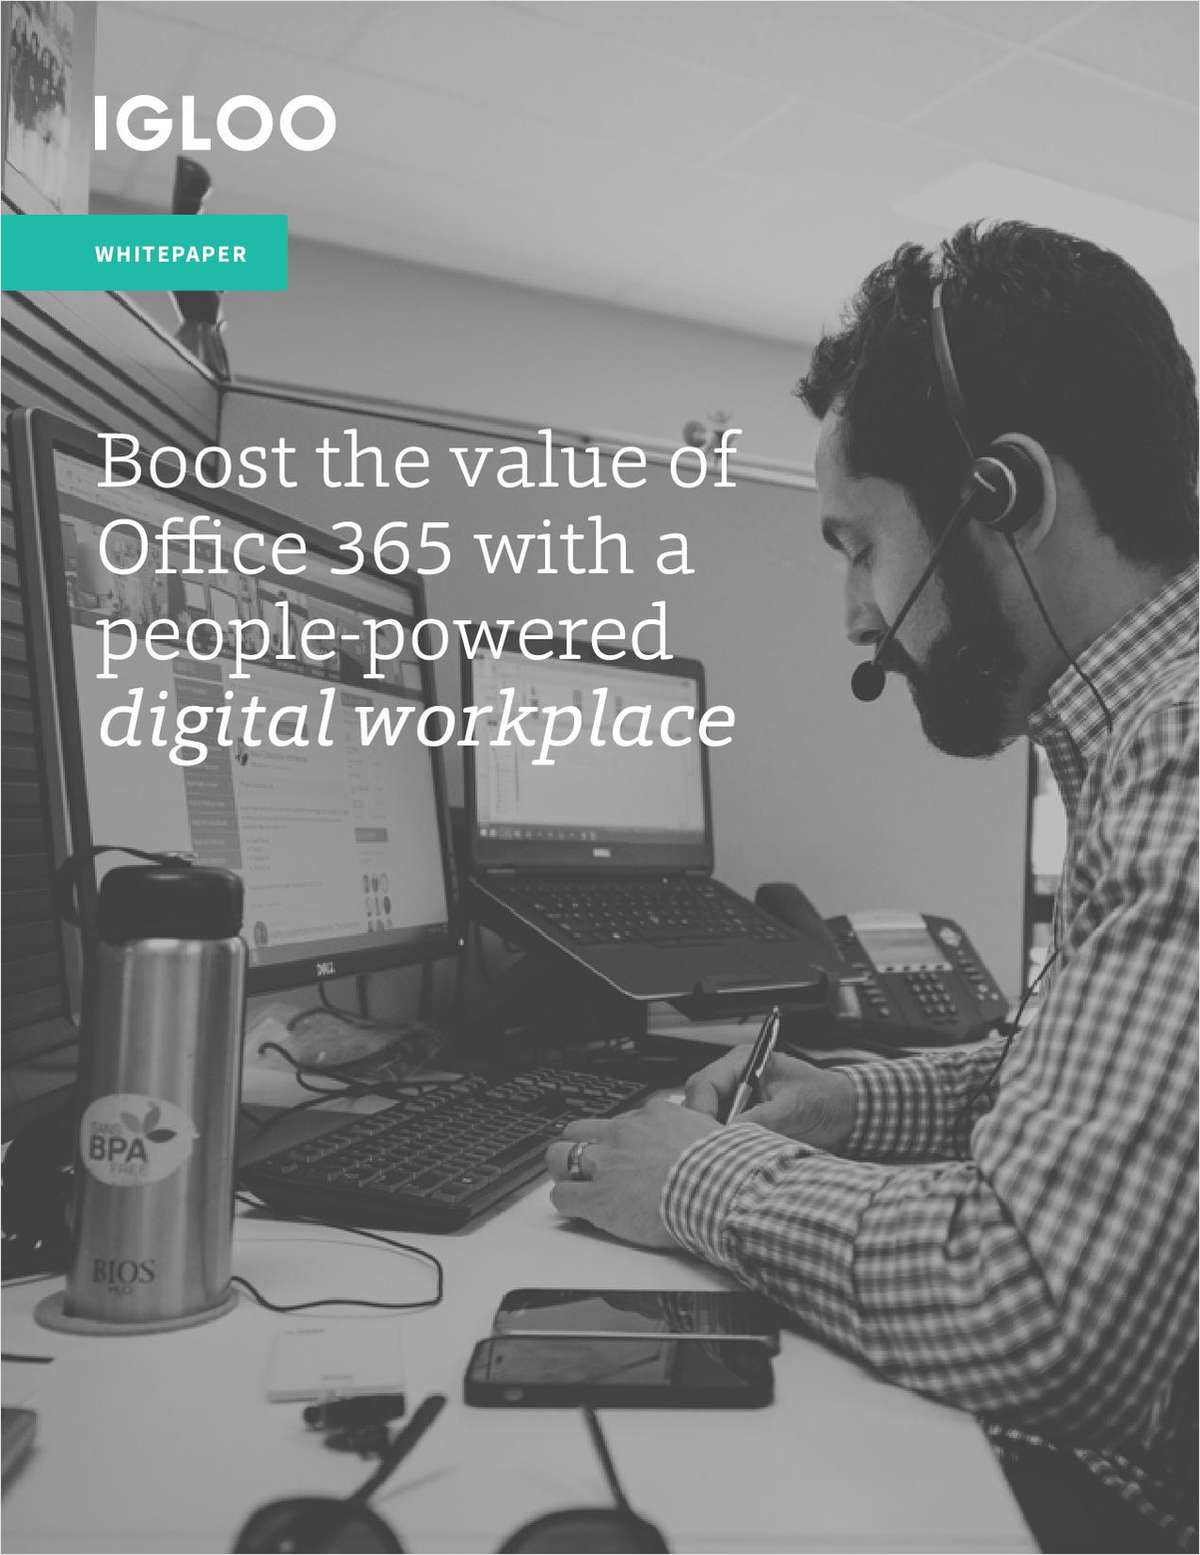 Boost the Value of Office 365 with a People-Powered Digital Workplace